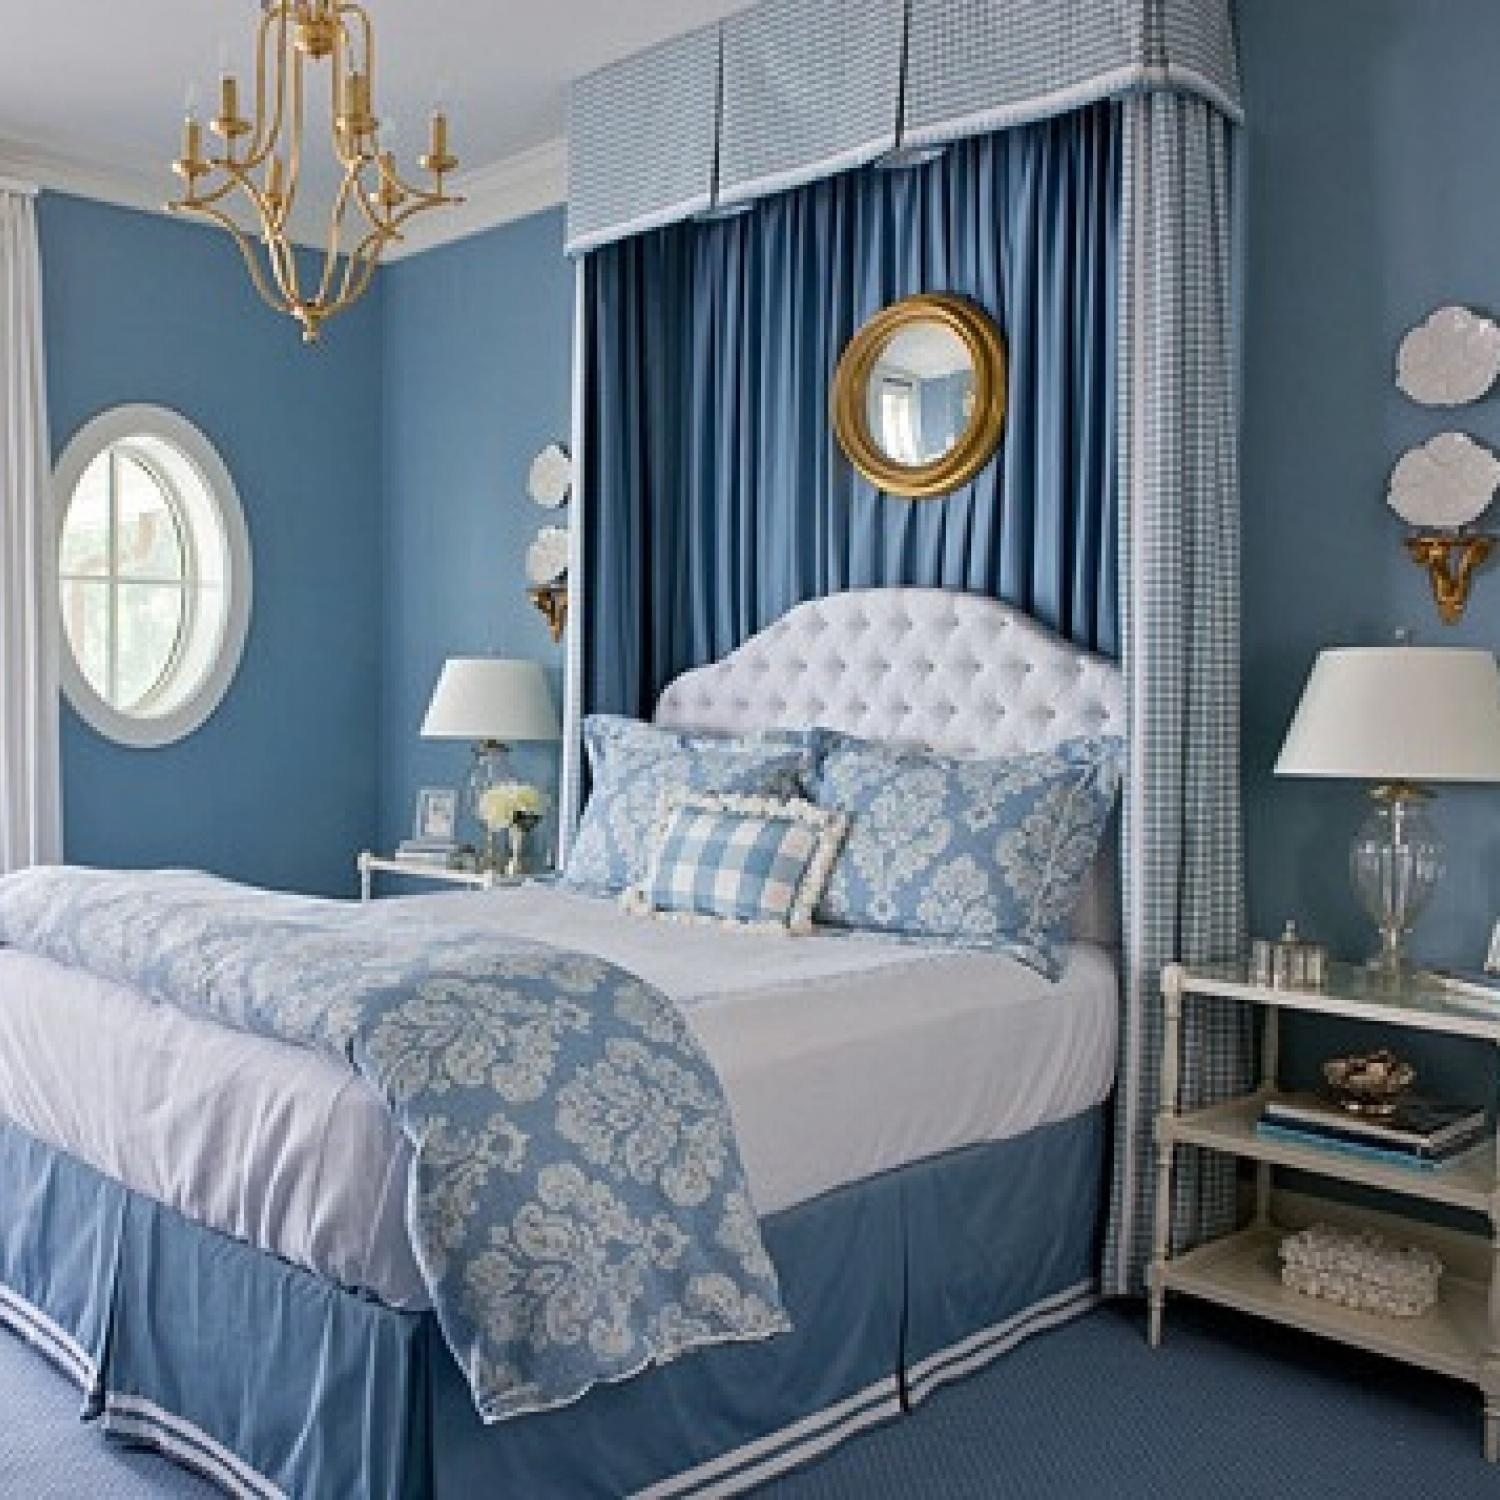 Traditional Blue Bedroom Designs Traditional Blue Bedroom Designs